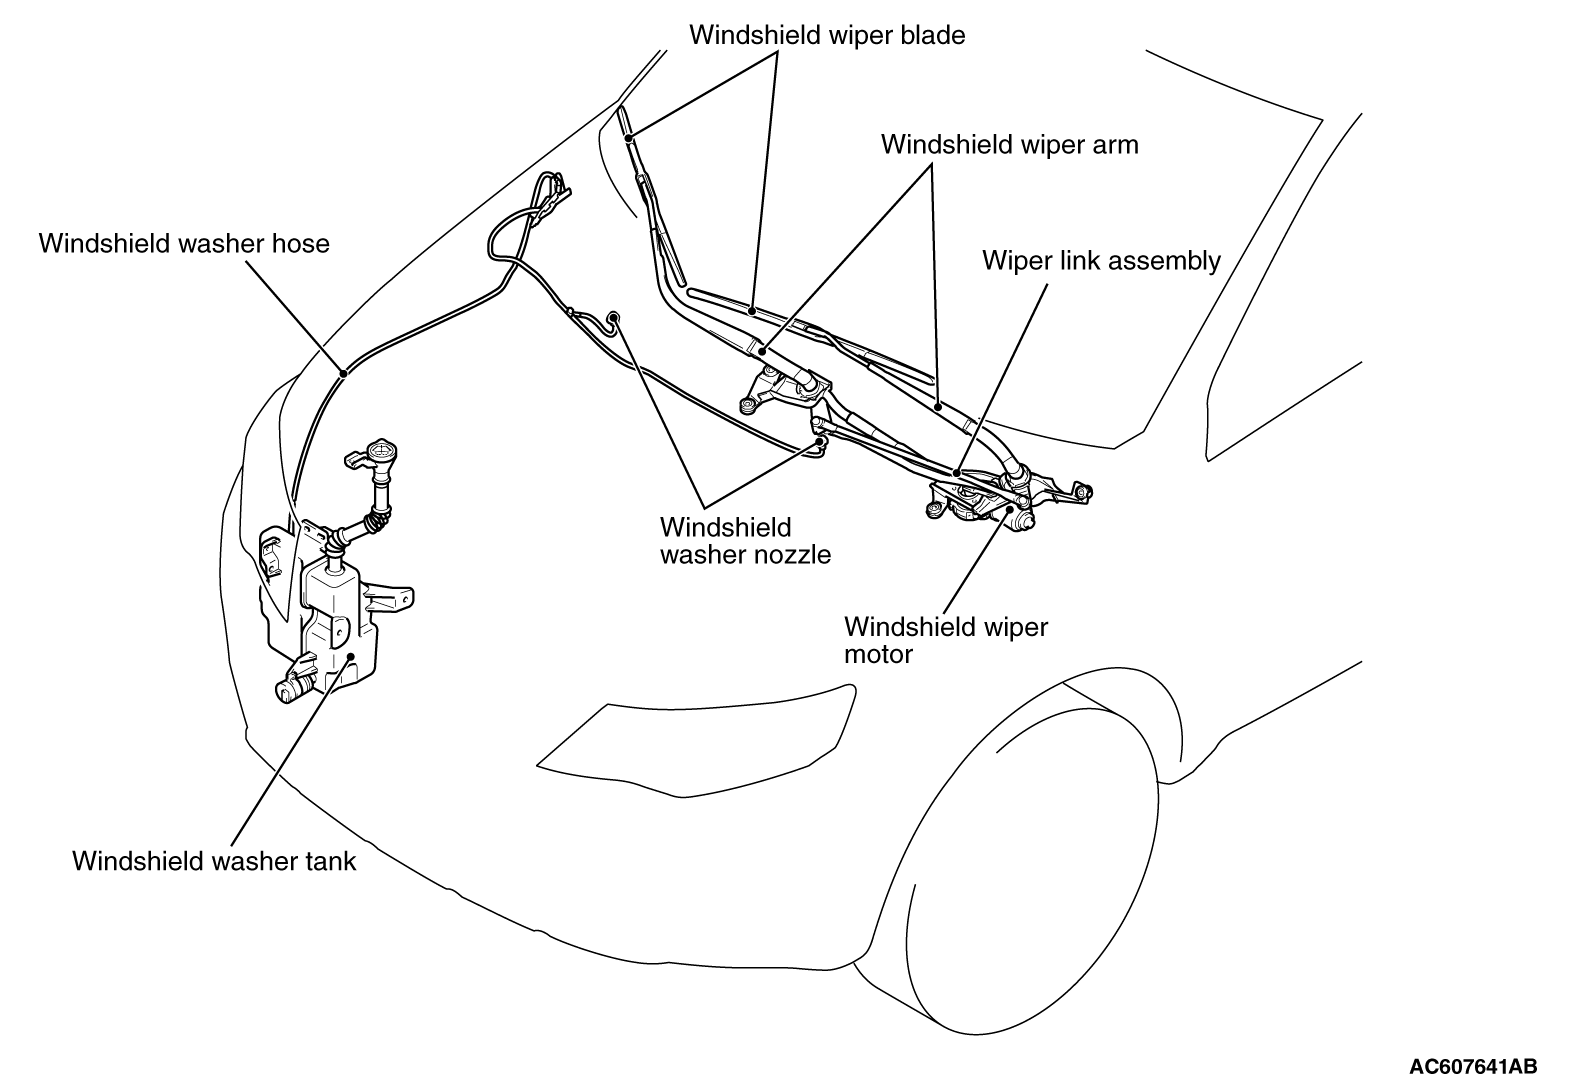 Wiring Diagram Wire Windshield Wiper Motor